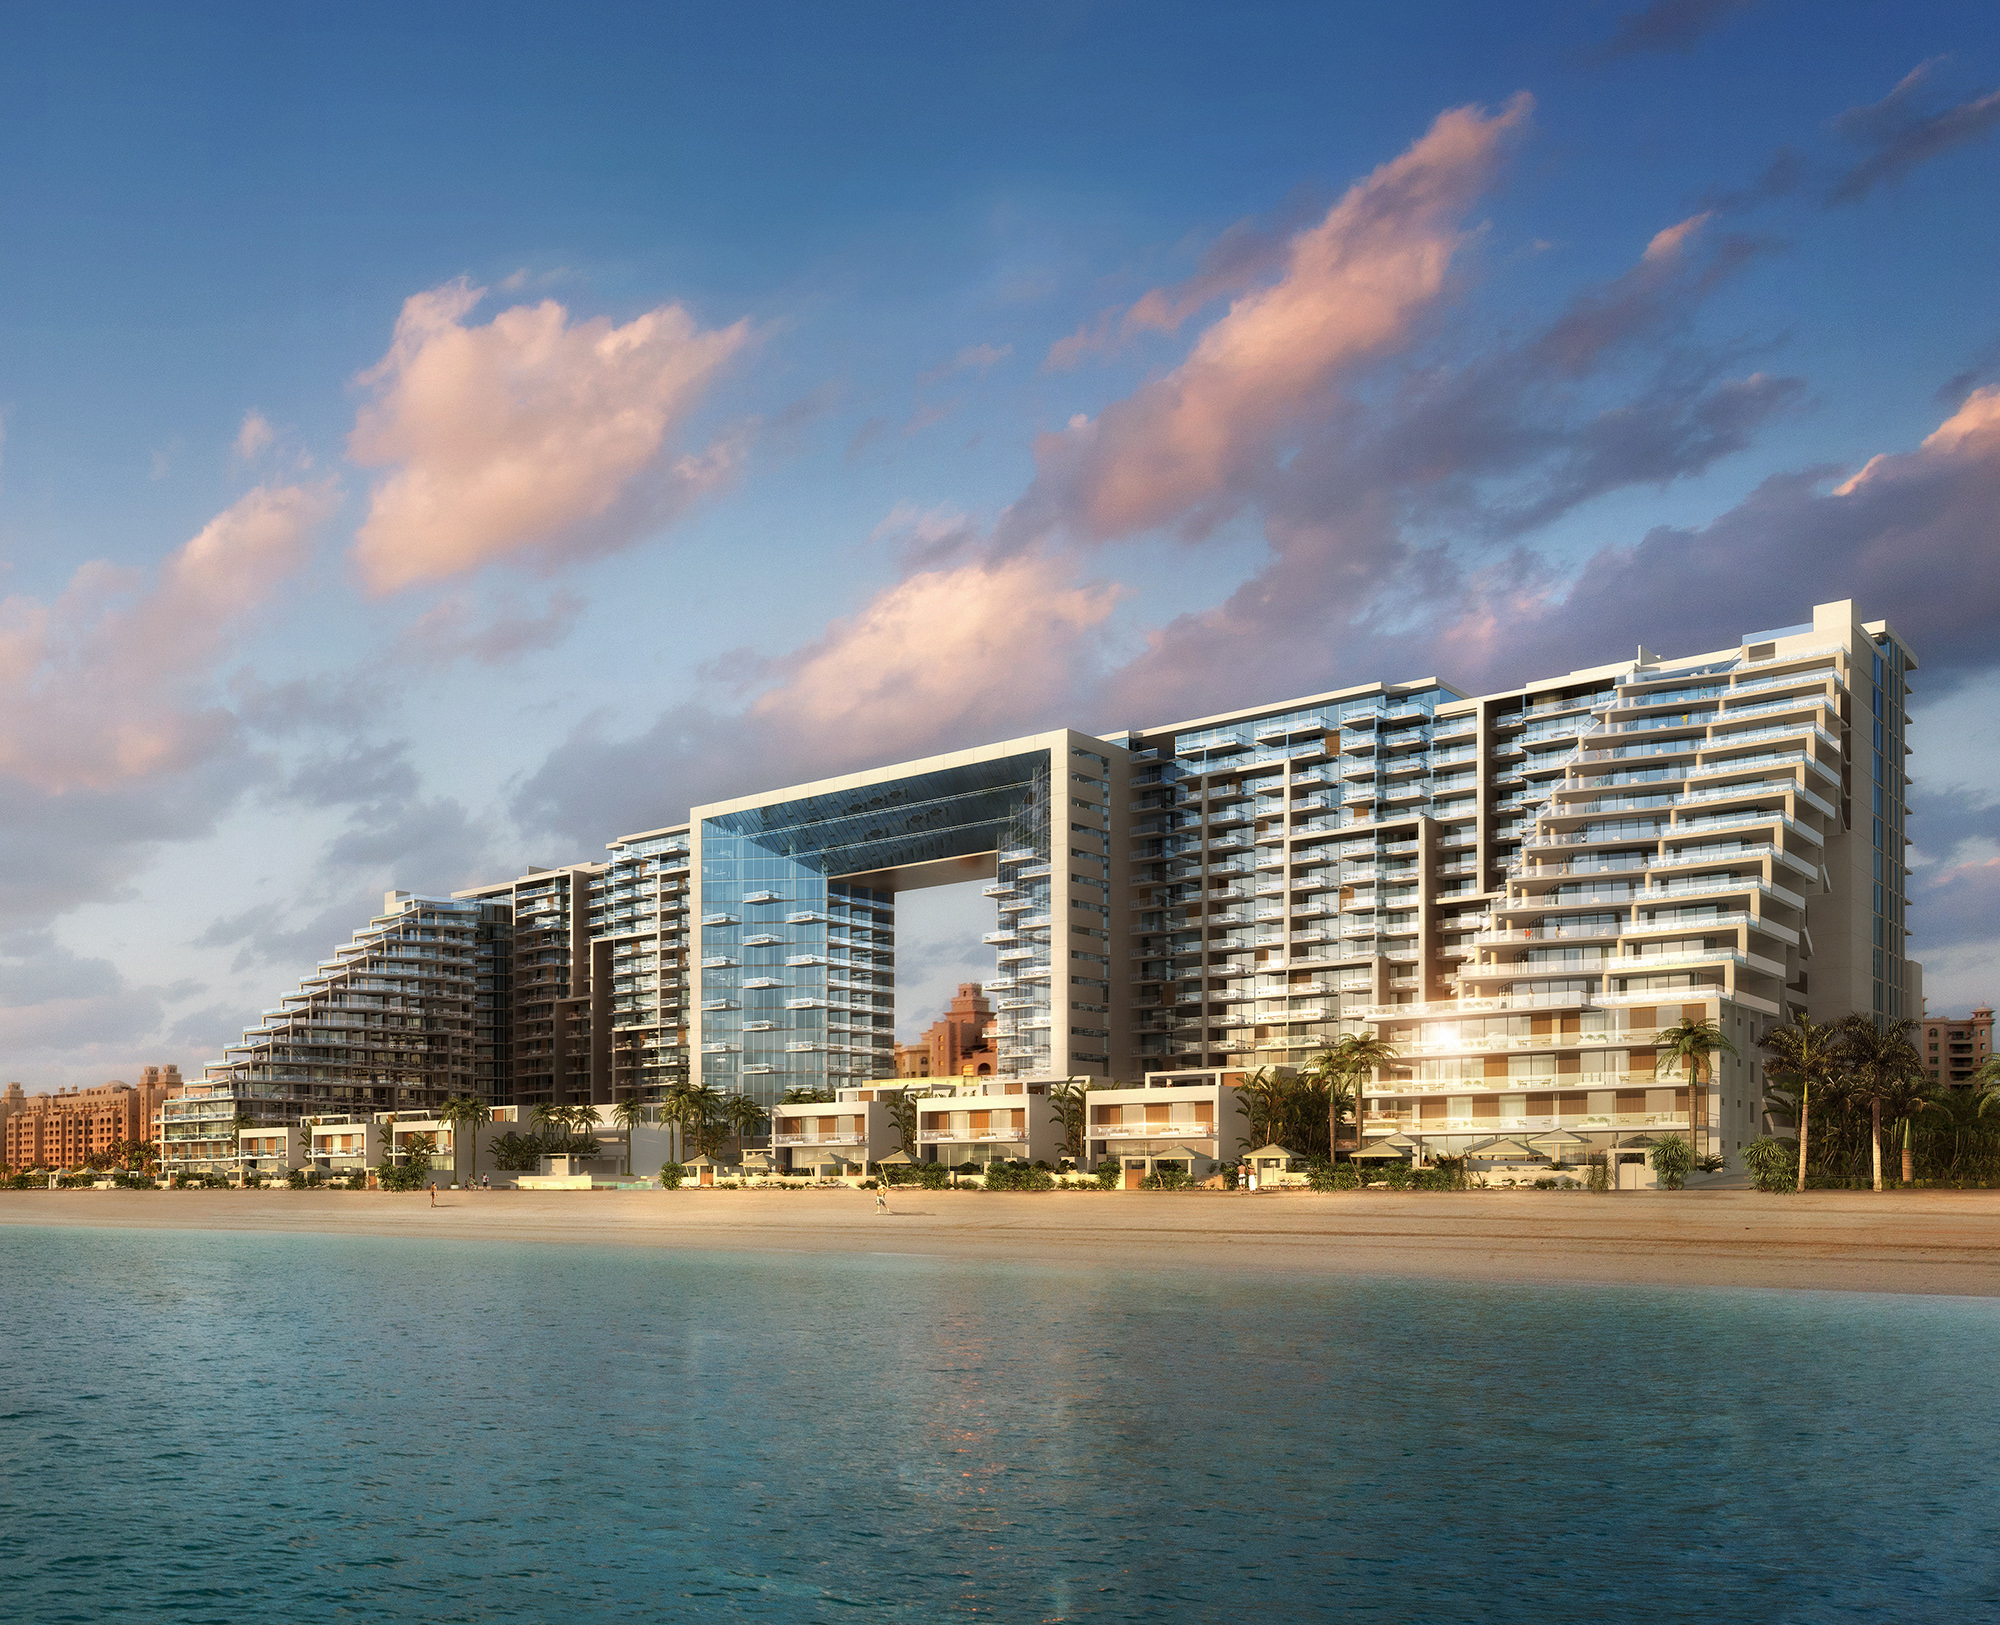 Viceroy hotel group introduces viceroy new york for Dubai palm hotel